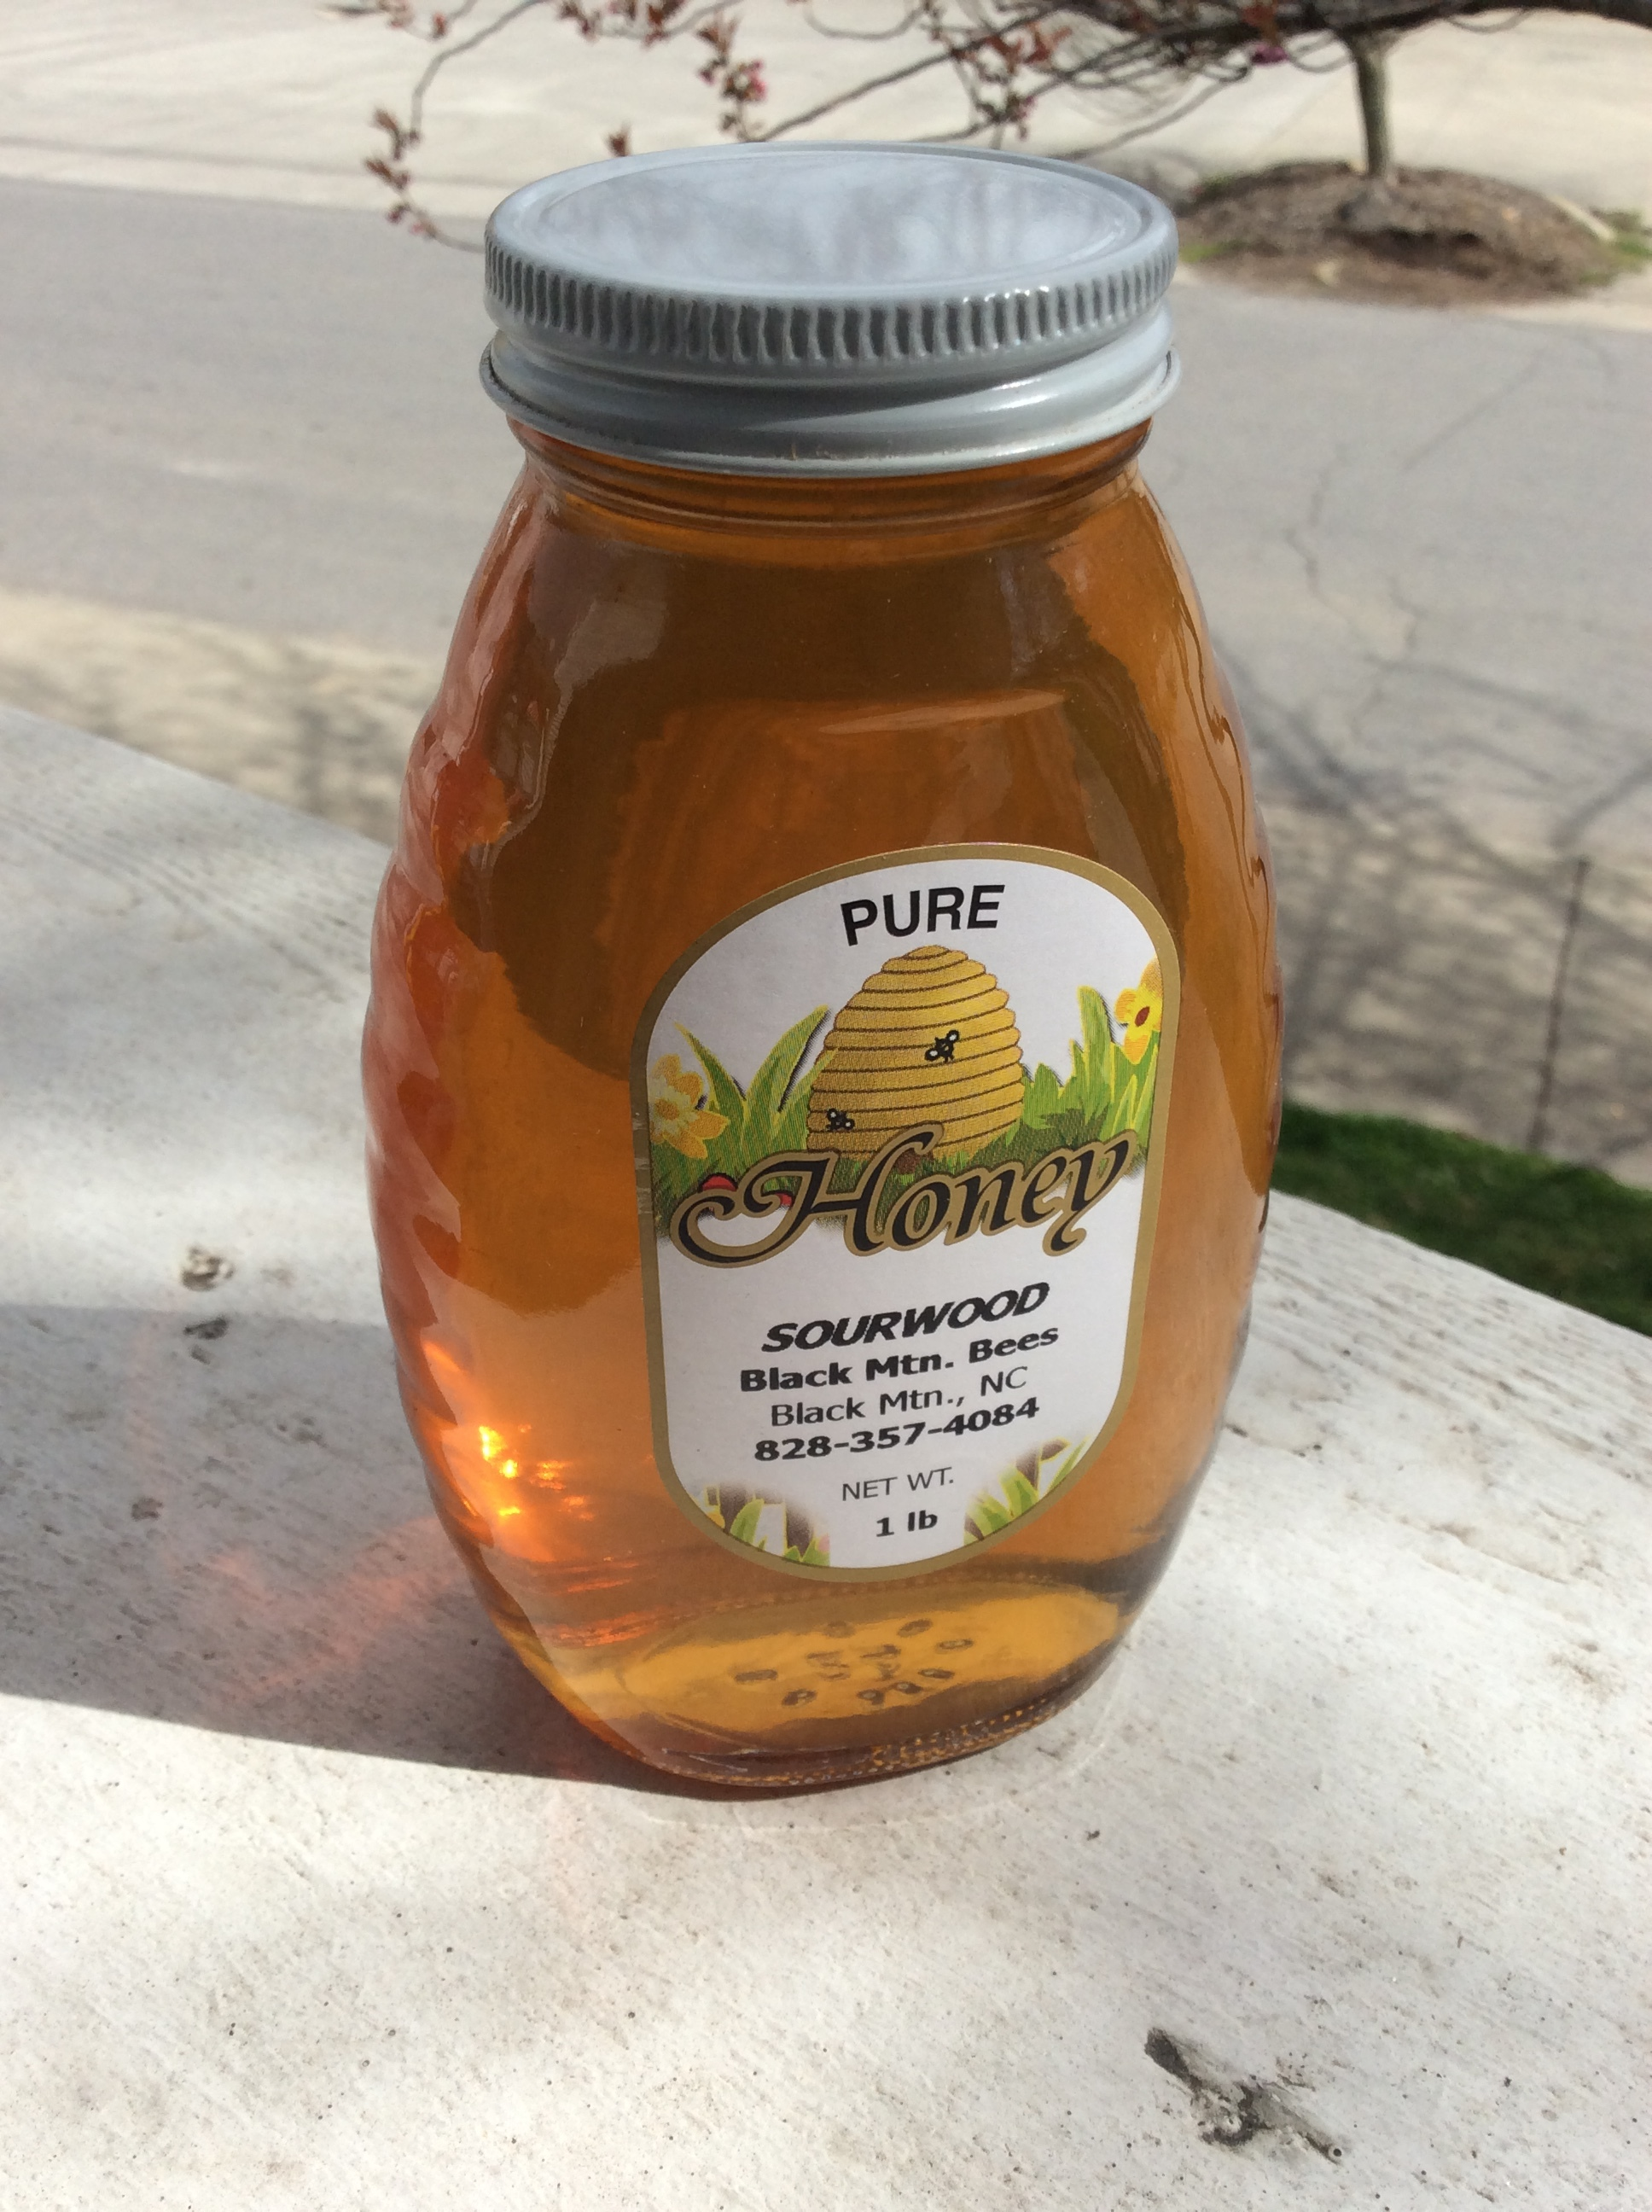 Sourwood Honey - From right here in Black Mountain! A sweet deal at $16